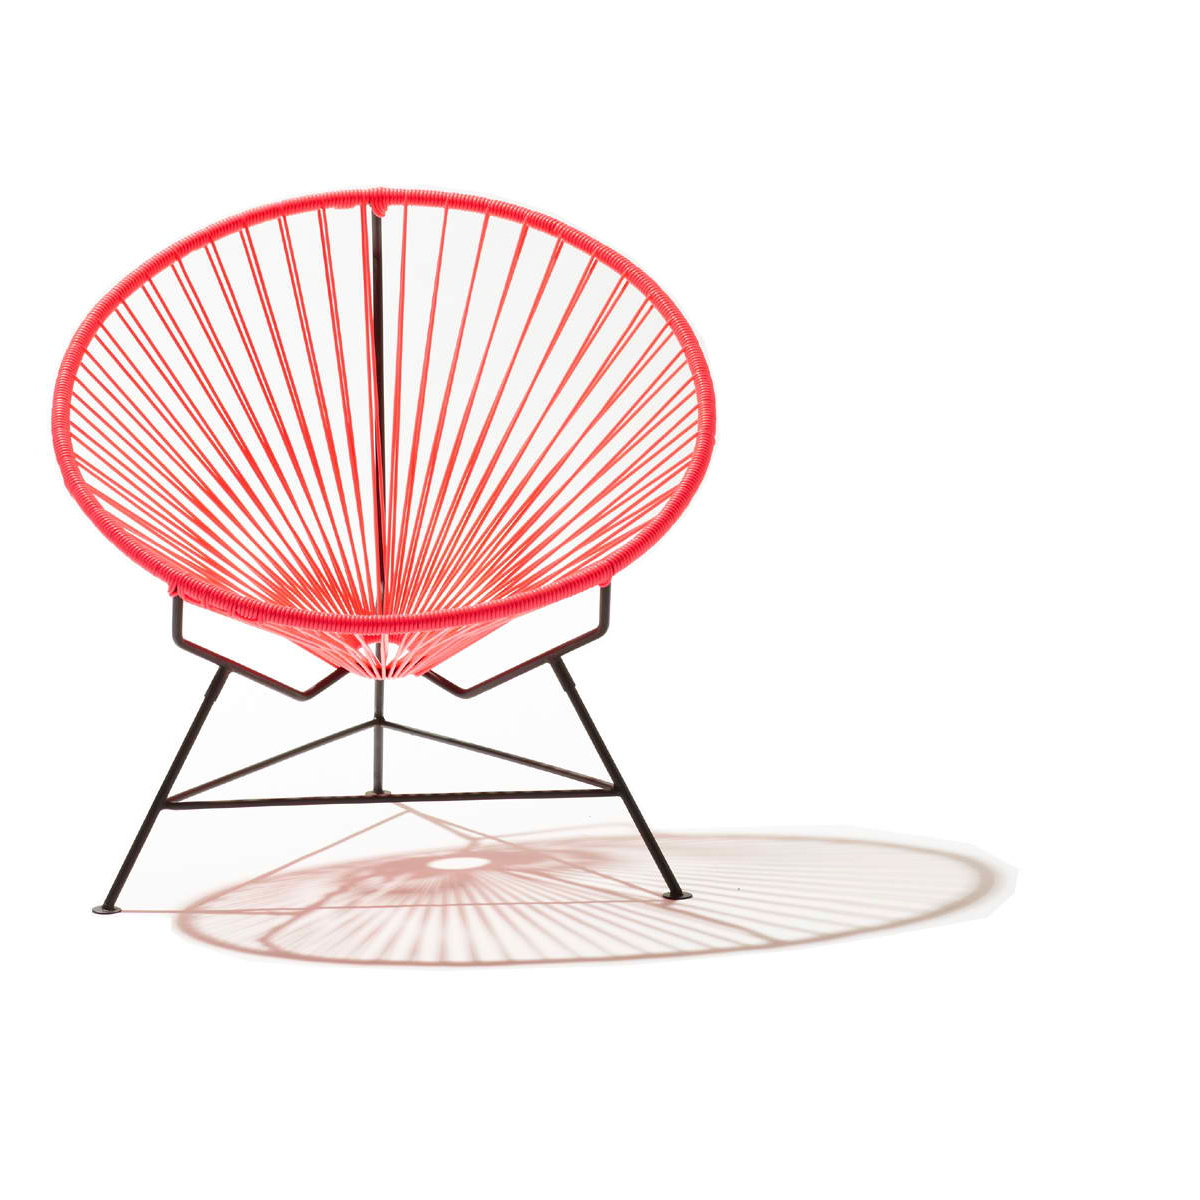 Is the acapulco chair - available in australia through acapulco chair